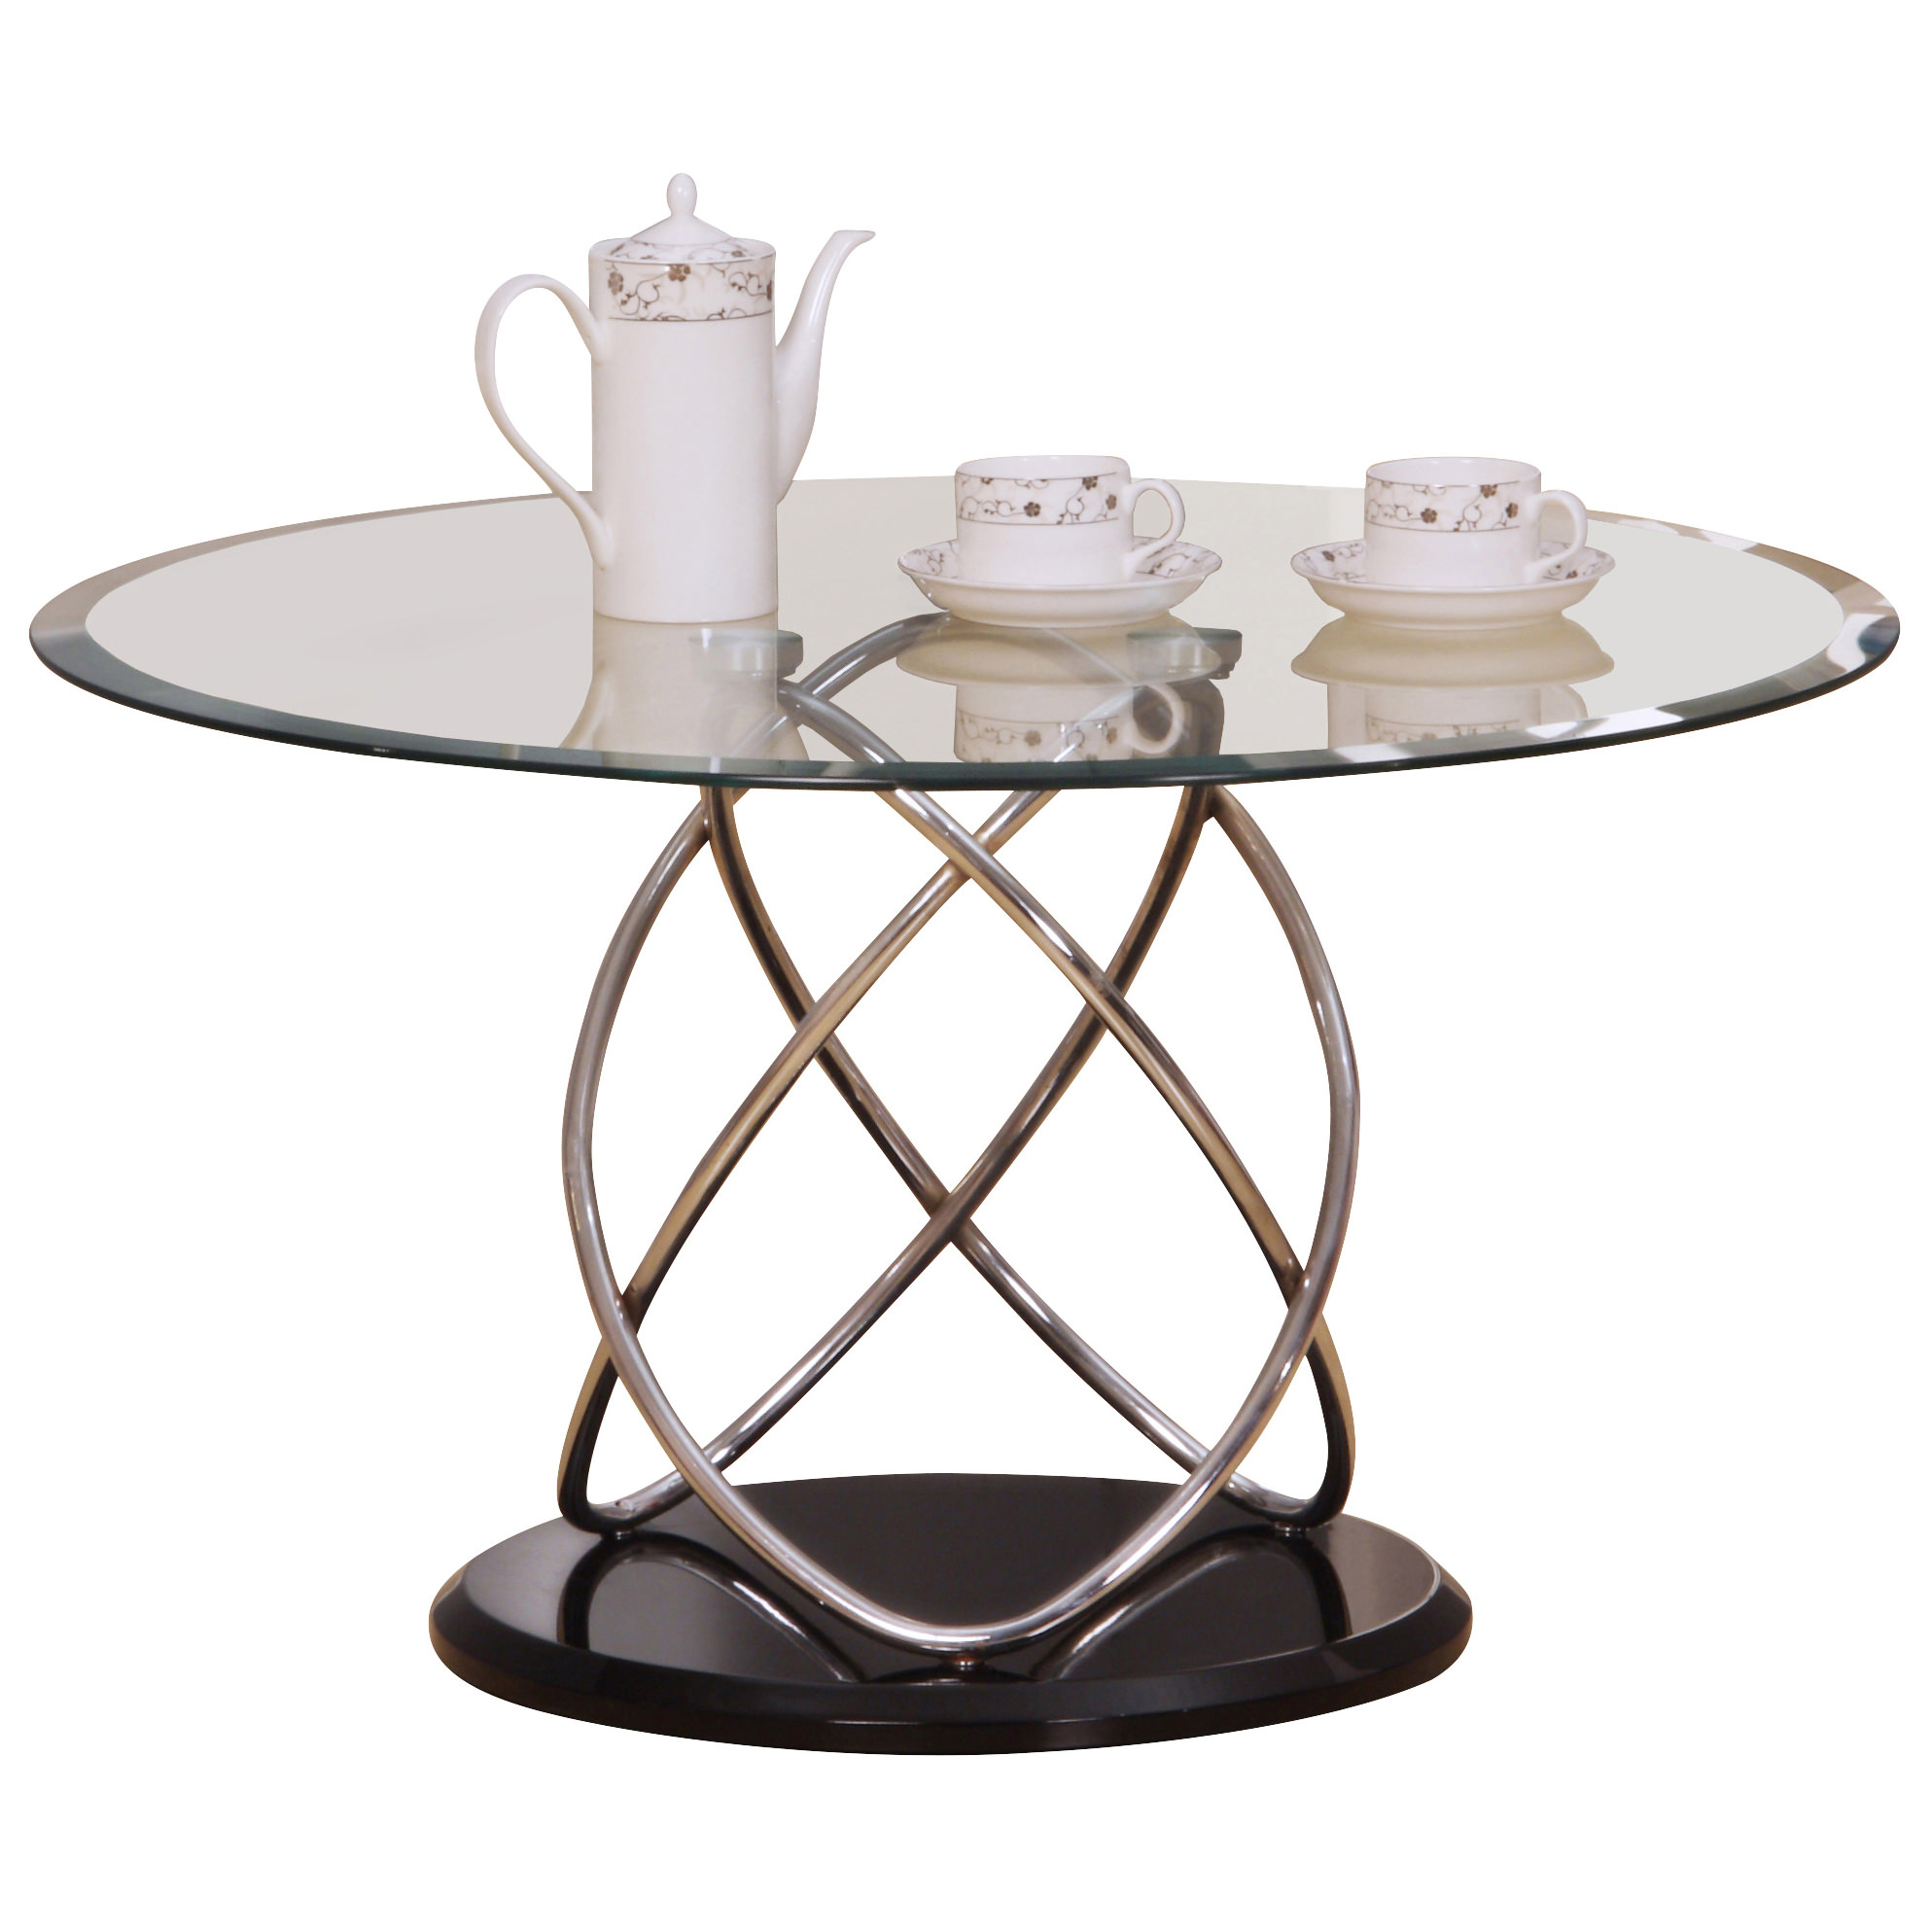 Chrome & Glass Metal Oval Coffee Table